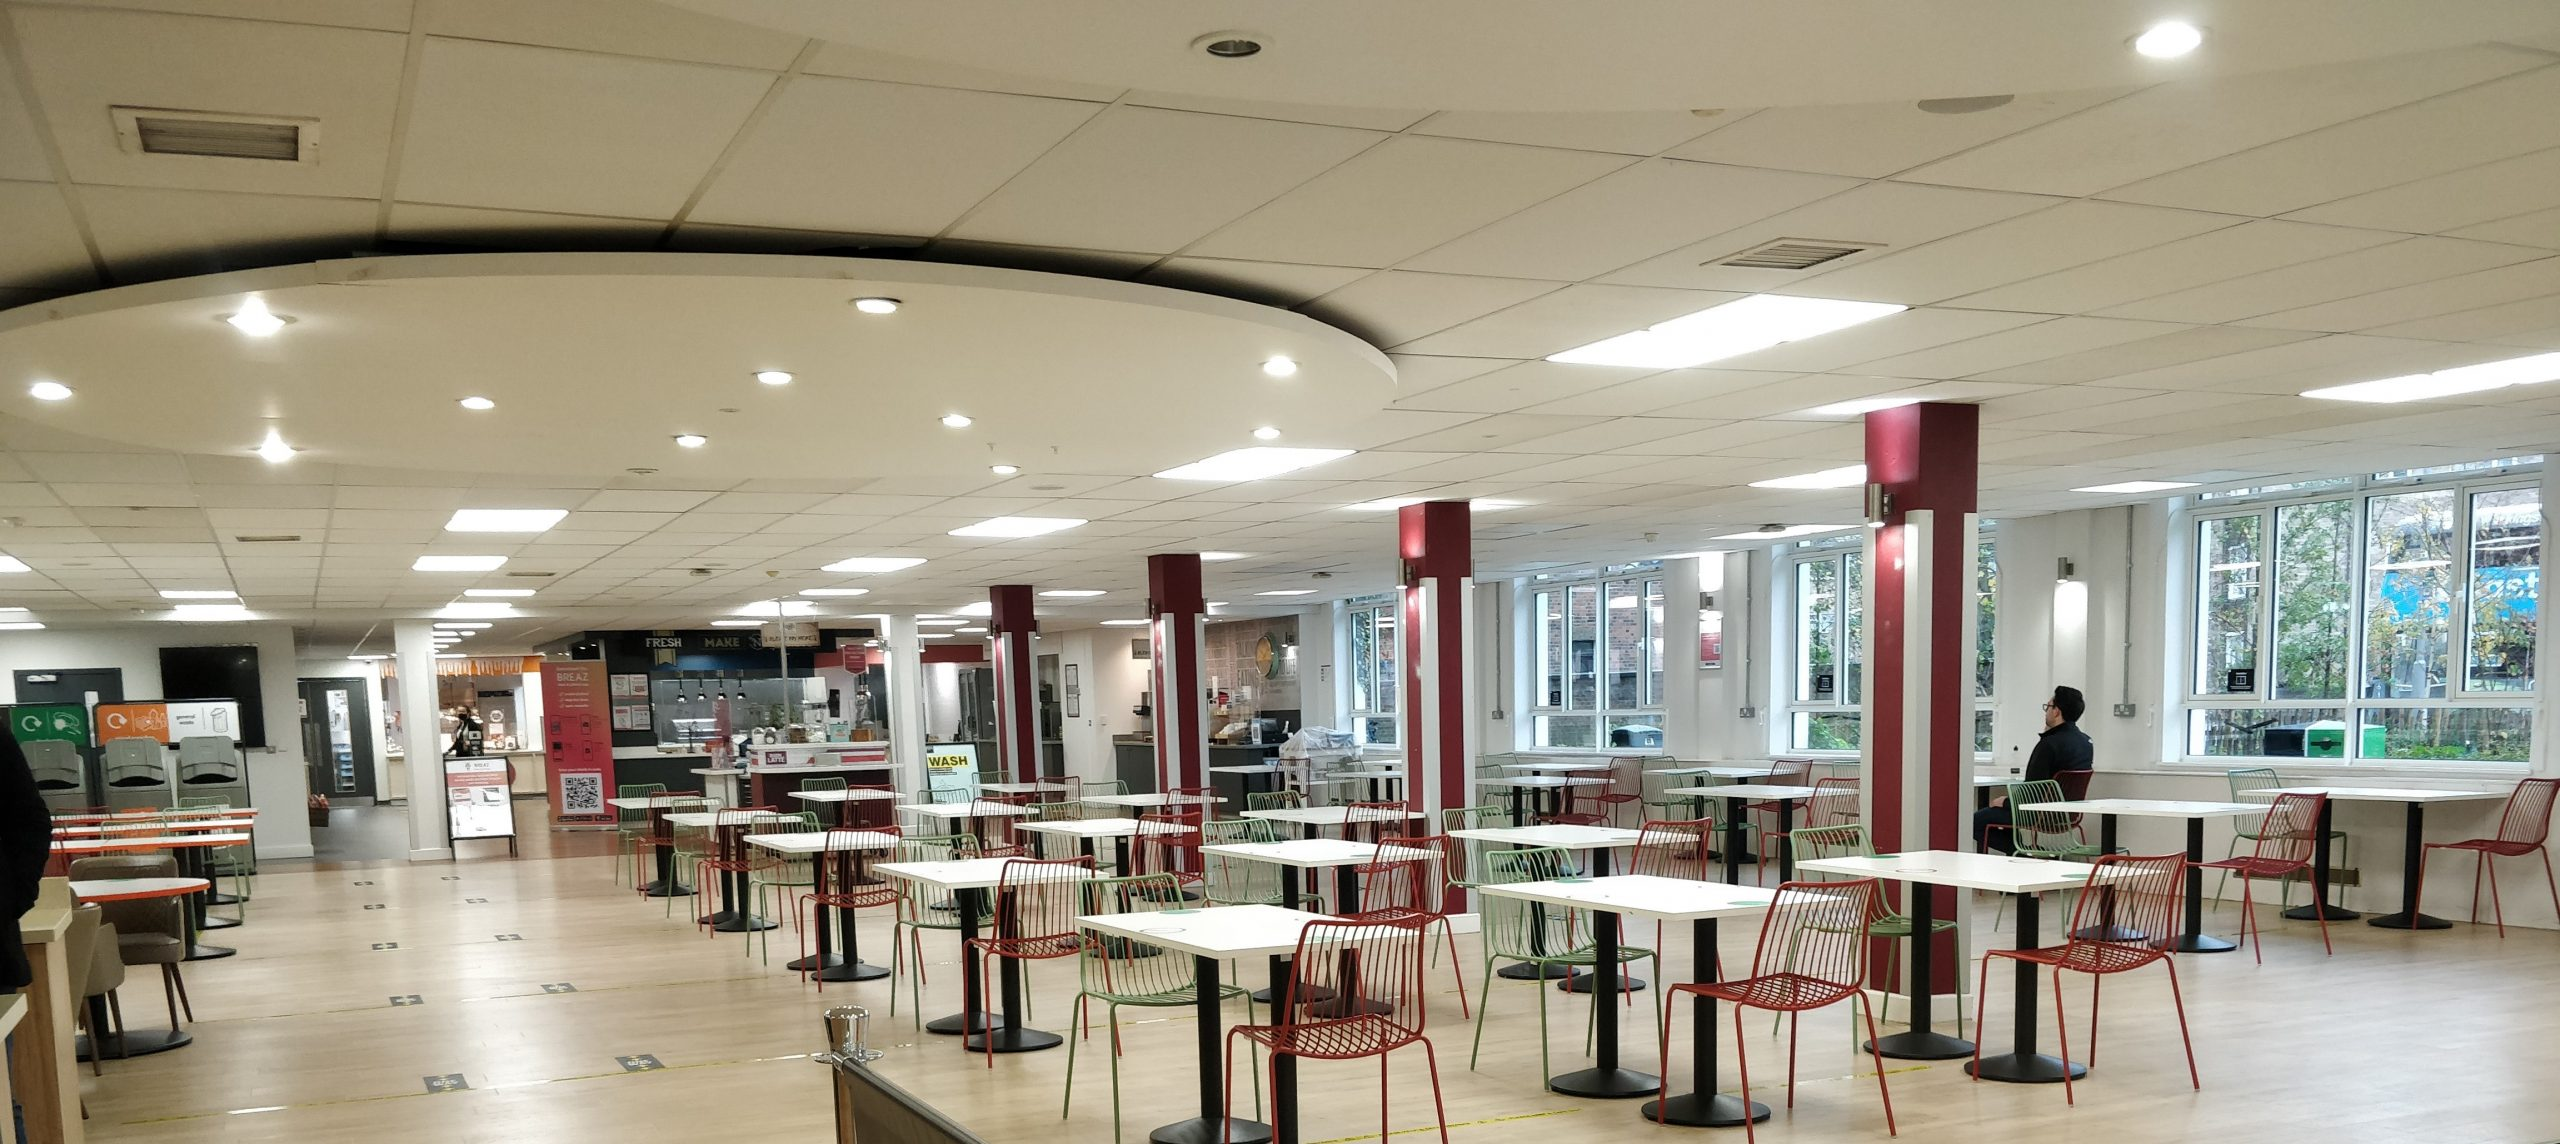 KU Penhryn Road canteen brought back tables after restrictions were lifted.